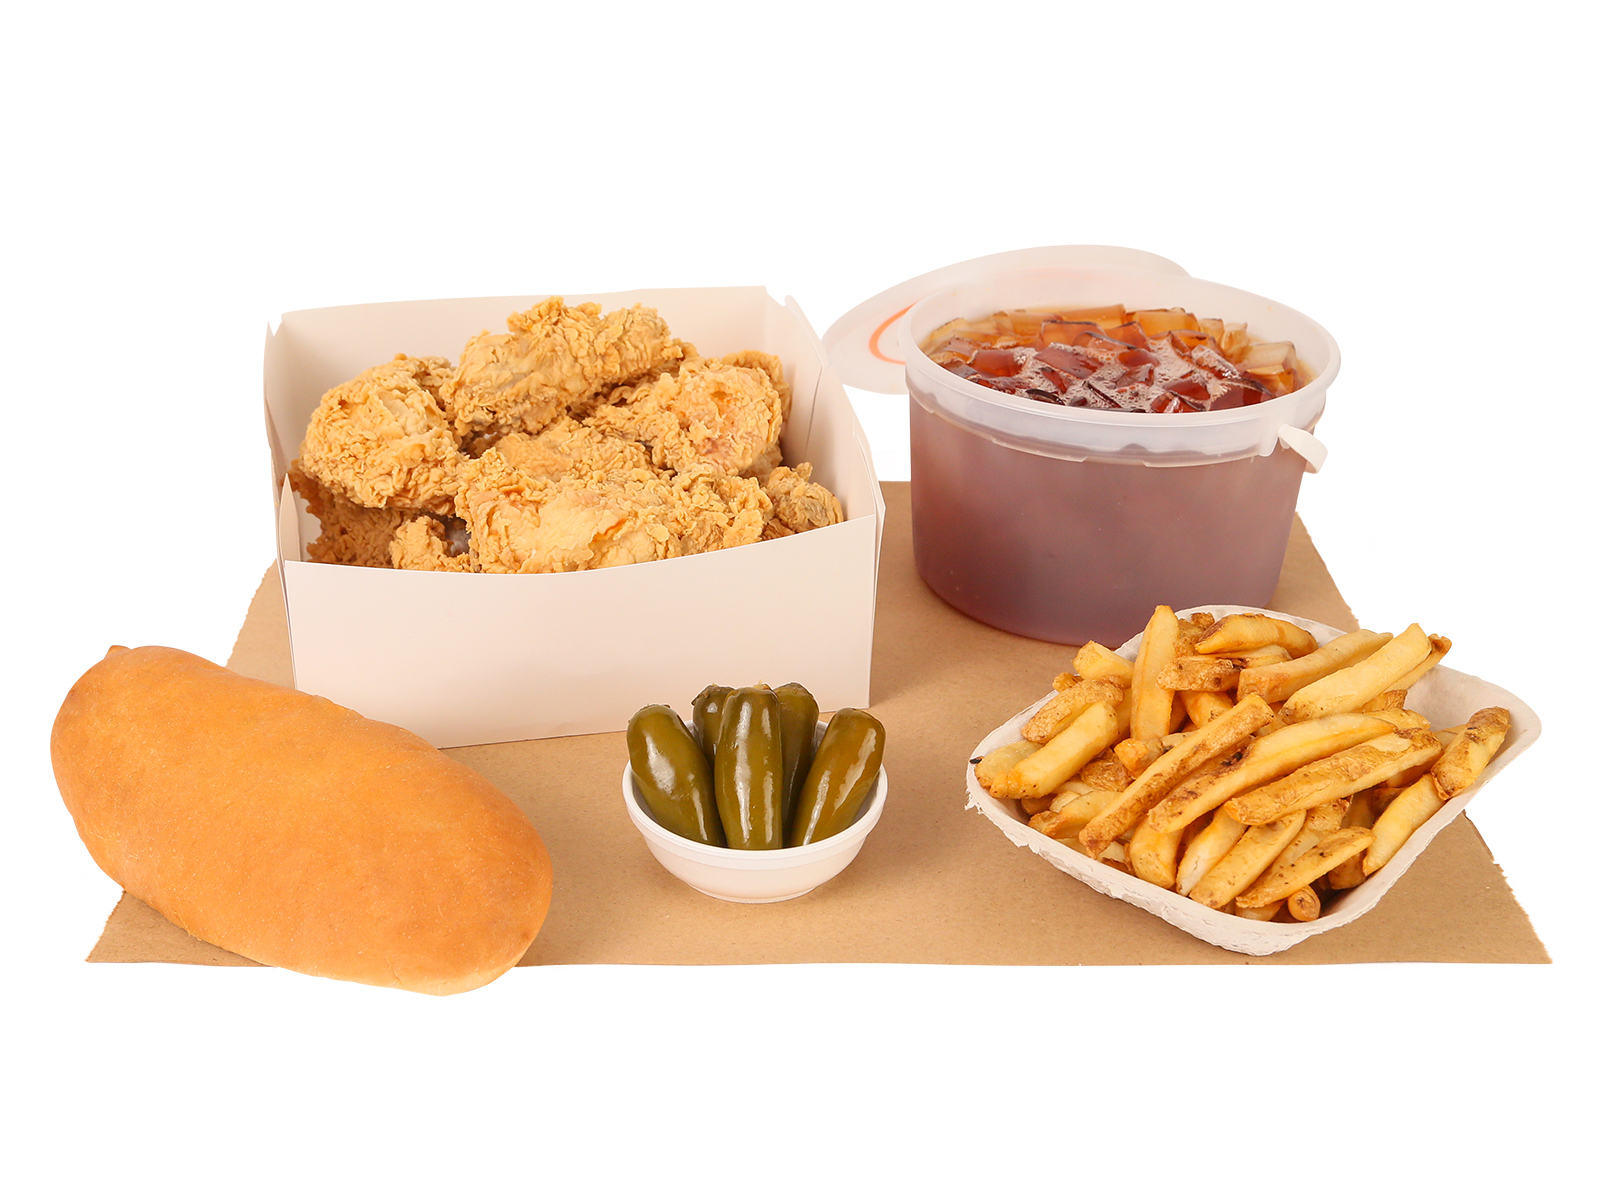 10 PC. Fried Chicken served with french fries, five jalapenos, french loaf, & bucket of tea